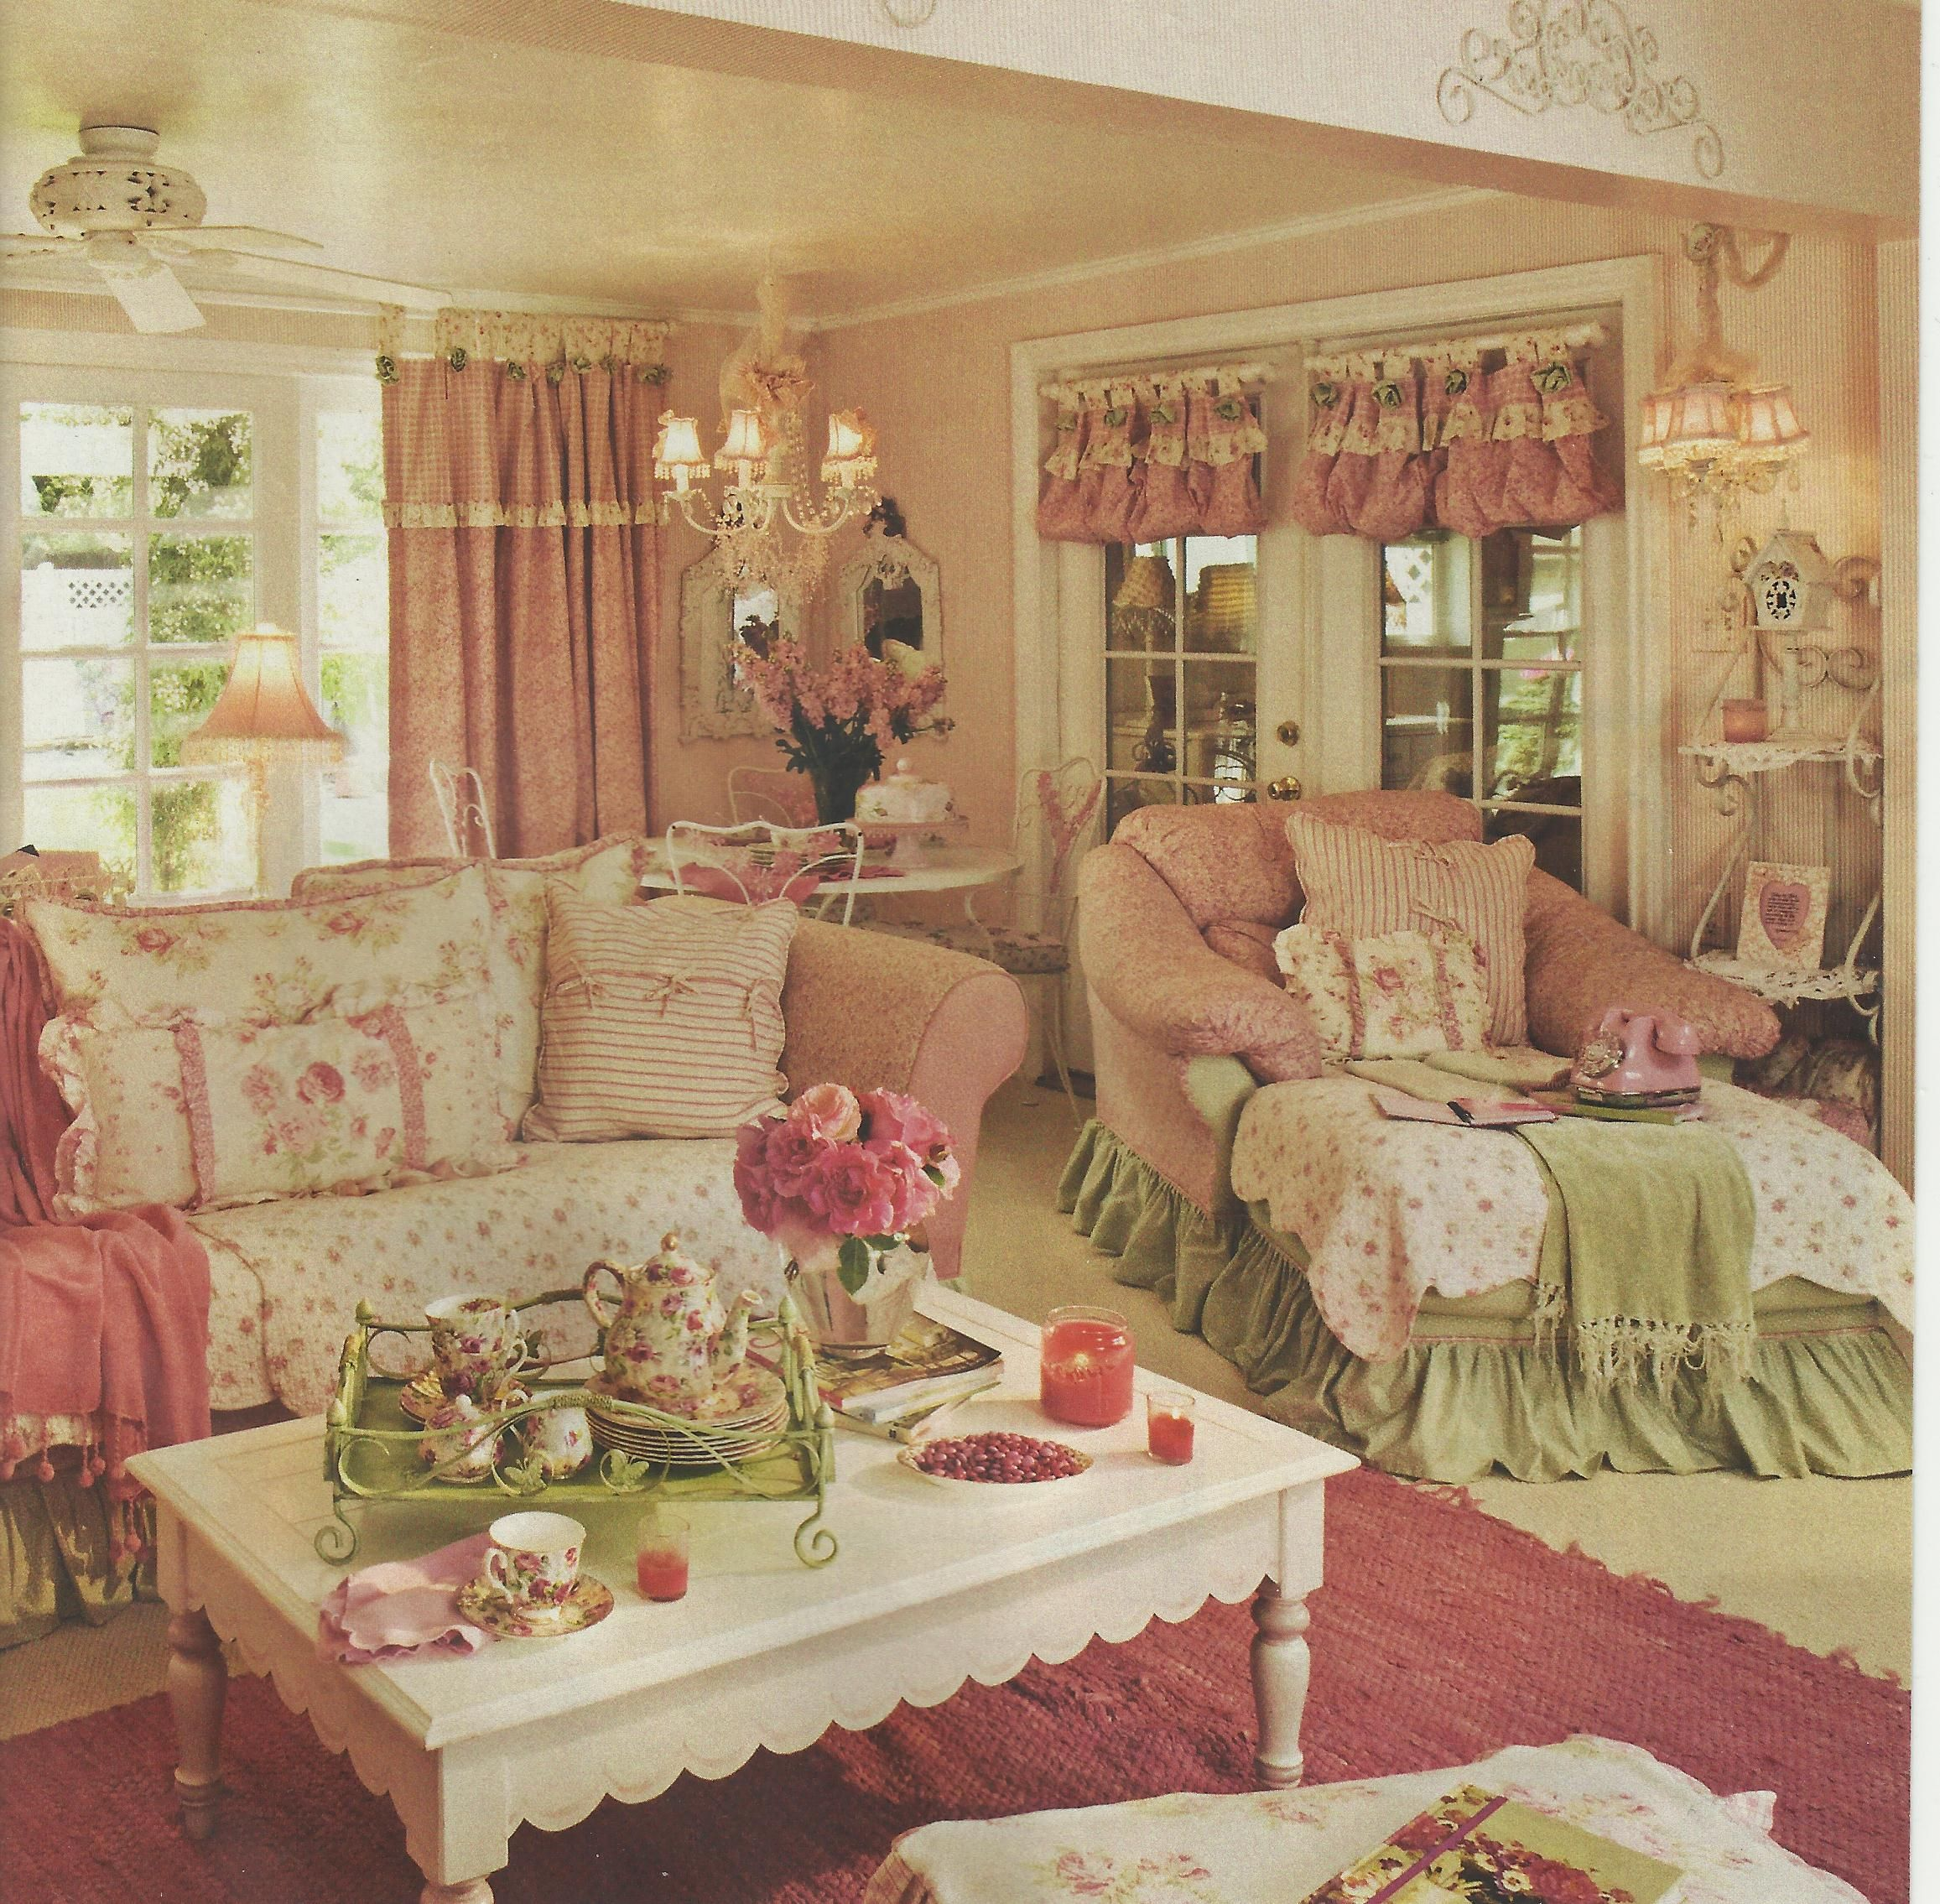 Shabby Chic Bedroom Paint Colors Little Girls Bedroom Ideas Vintage Taylor Swift Bedroom Decorating Ideas Before And After Small Bedroom Makeovers: Rob & Laura Bishops Lovely Redland, Calif. Home..a Little